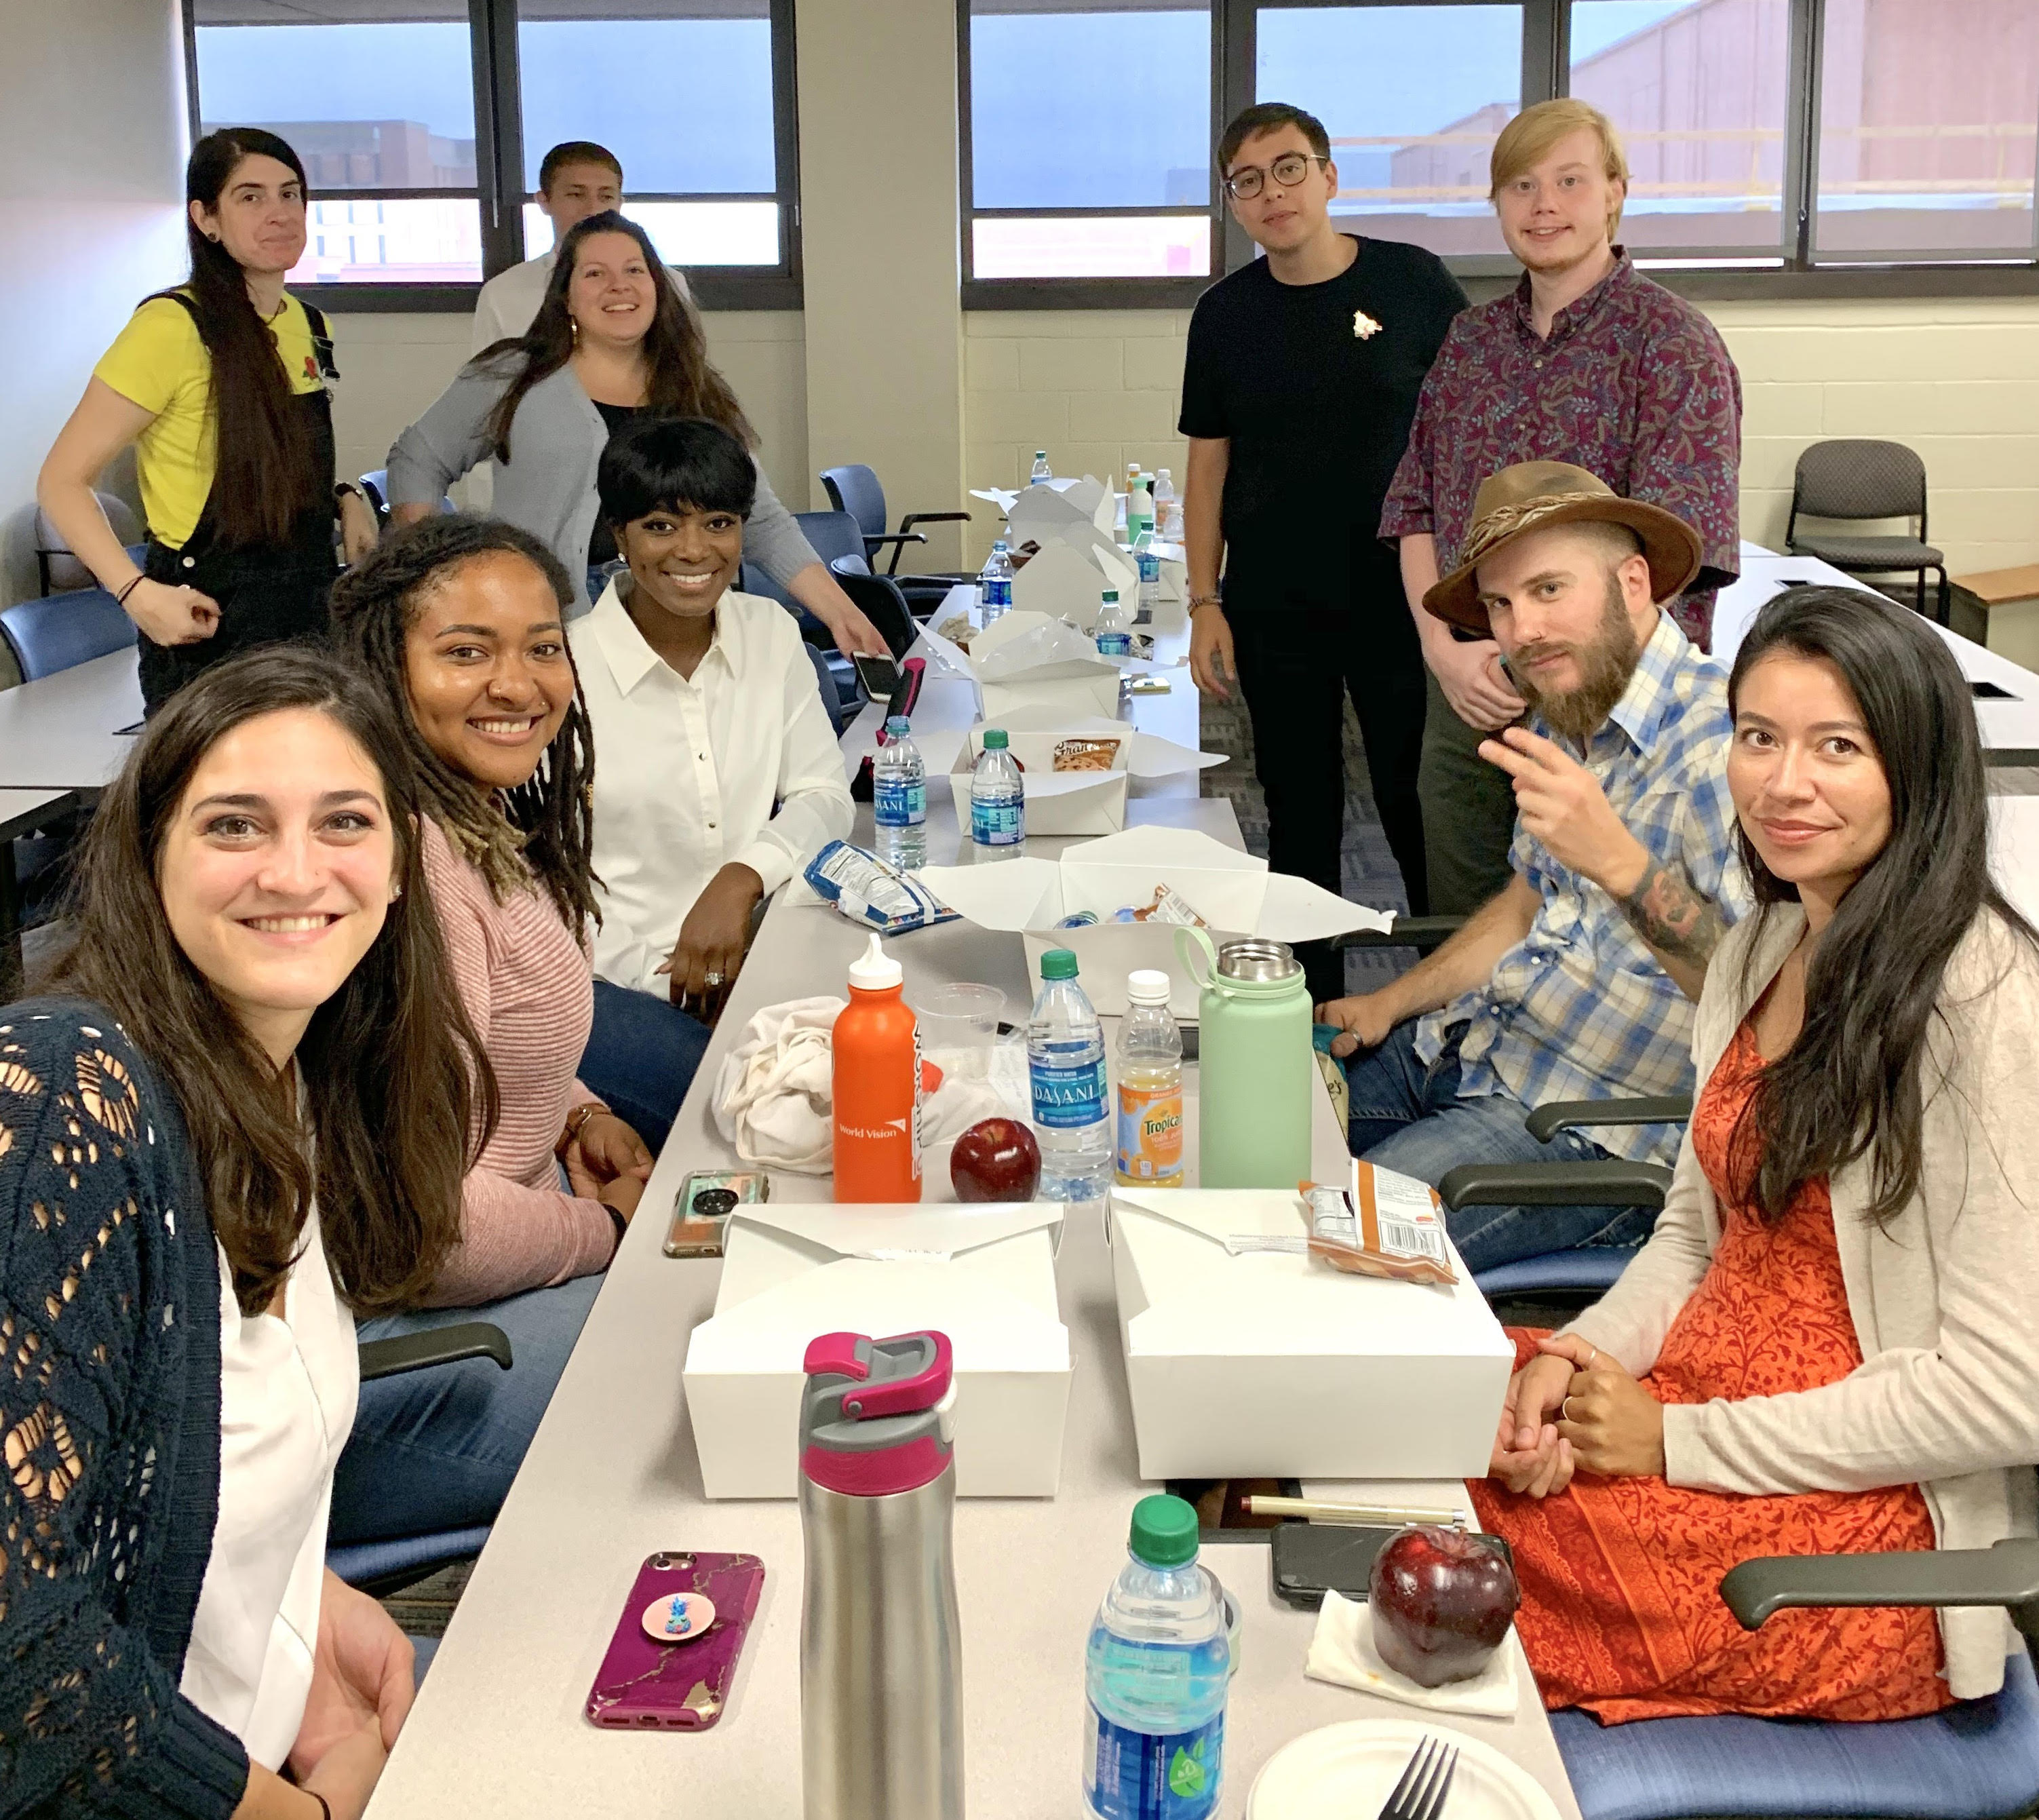 OUR SECOND YEAR INCC STUDENTS WELCOME THE NEW 2019 COHORT